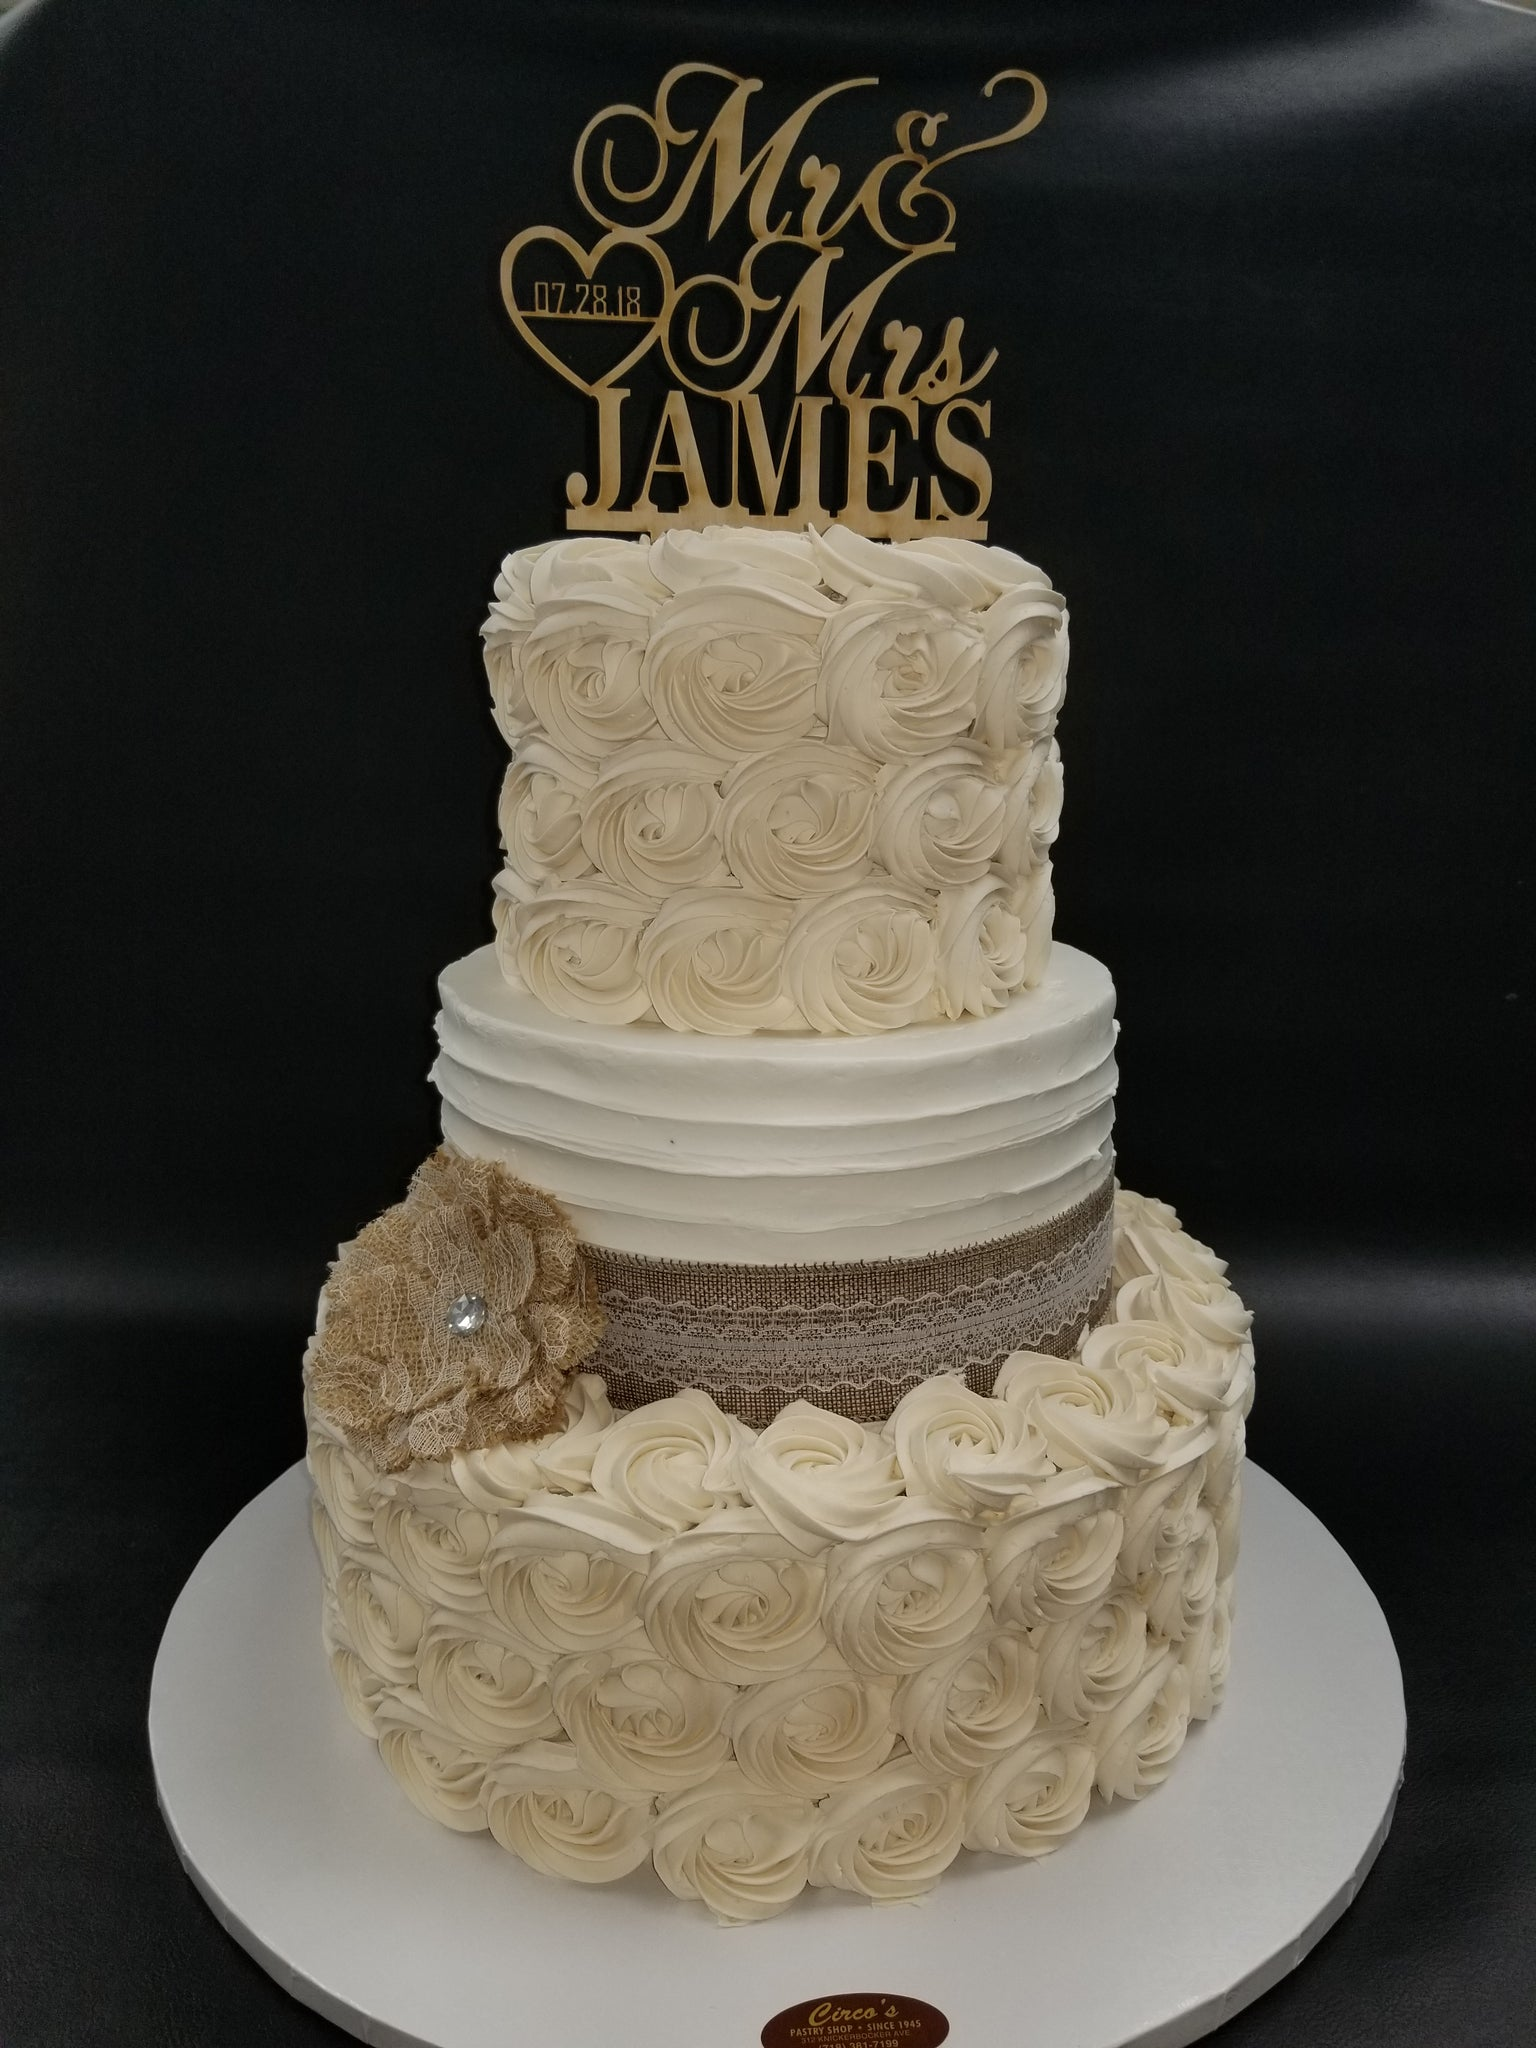 Burlap and Rosette style wedding cake W186